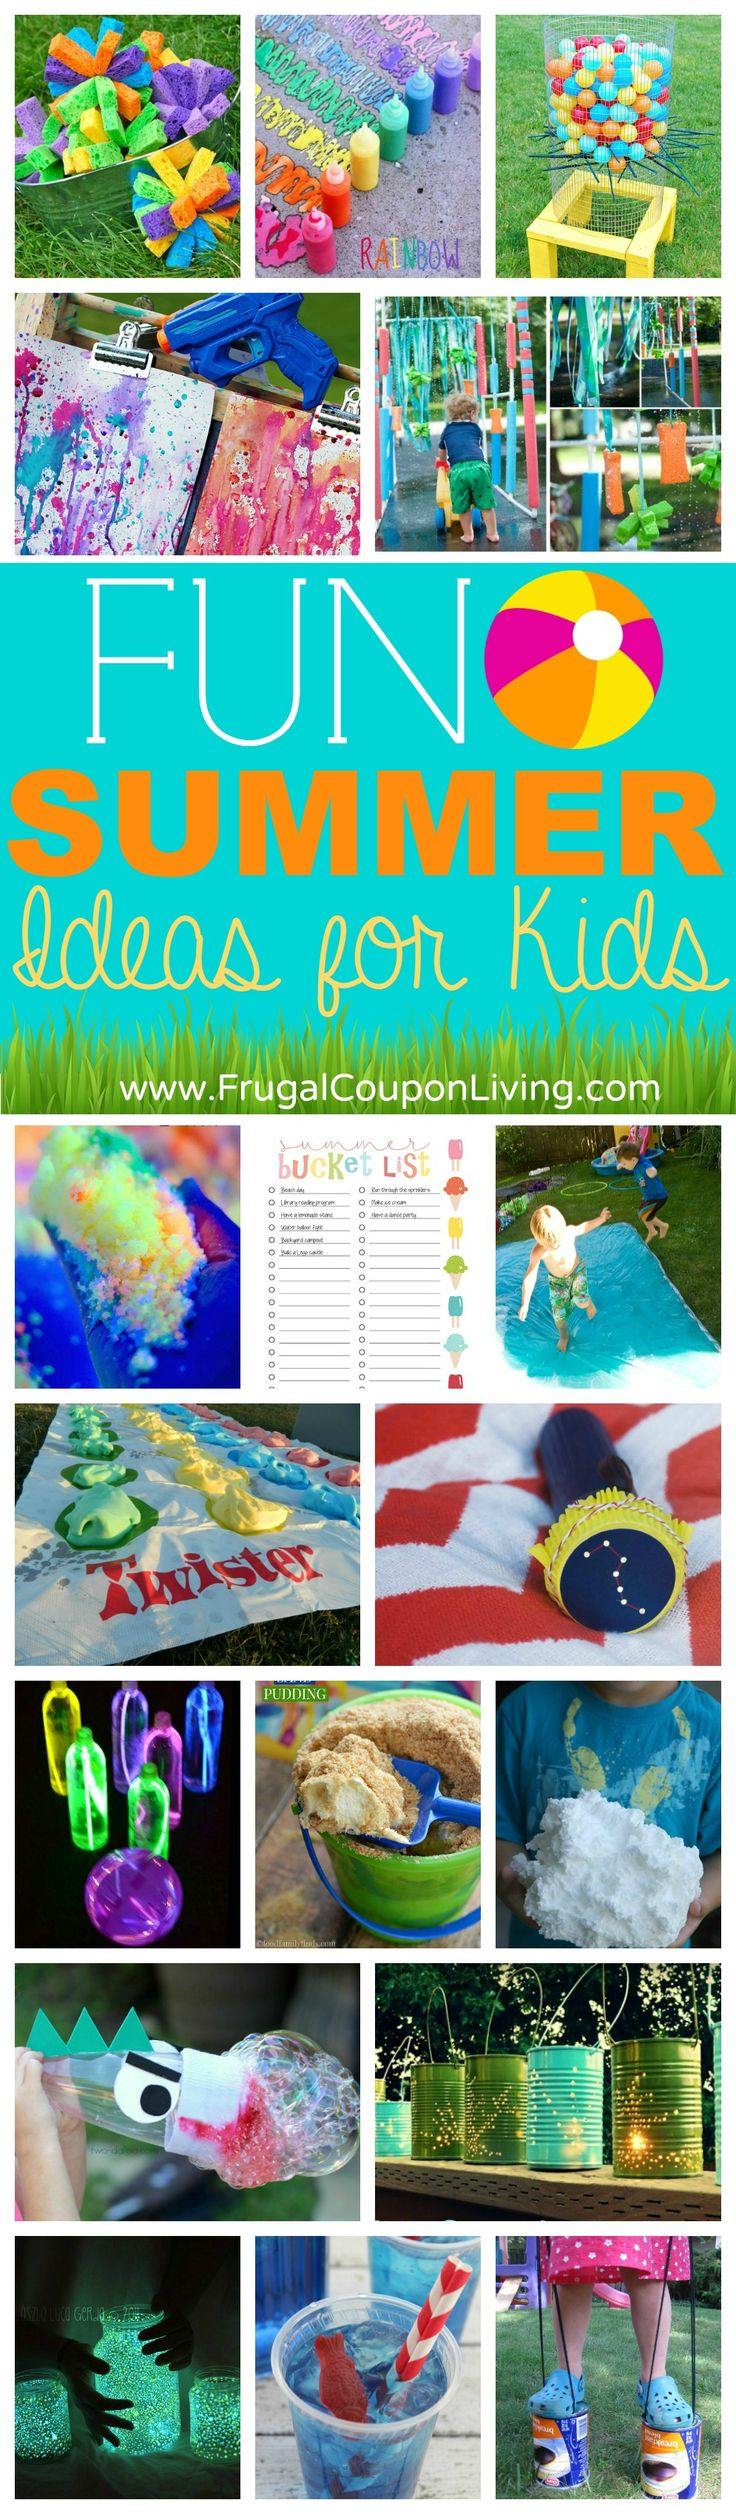 diy-summer-fun-ideas-for-kids-frugal-coupon-living